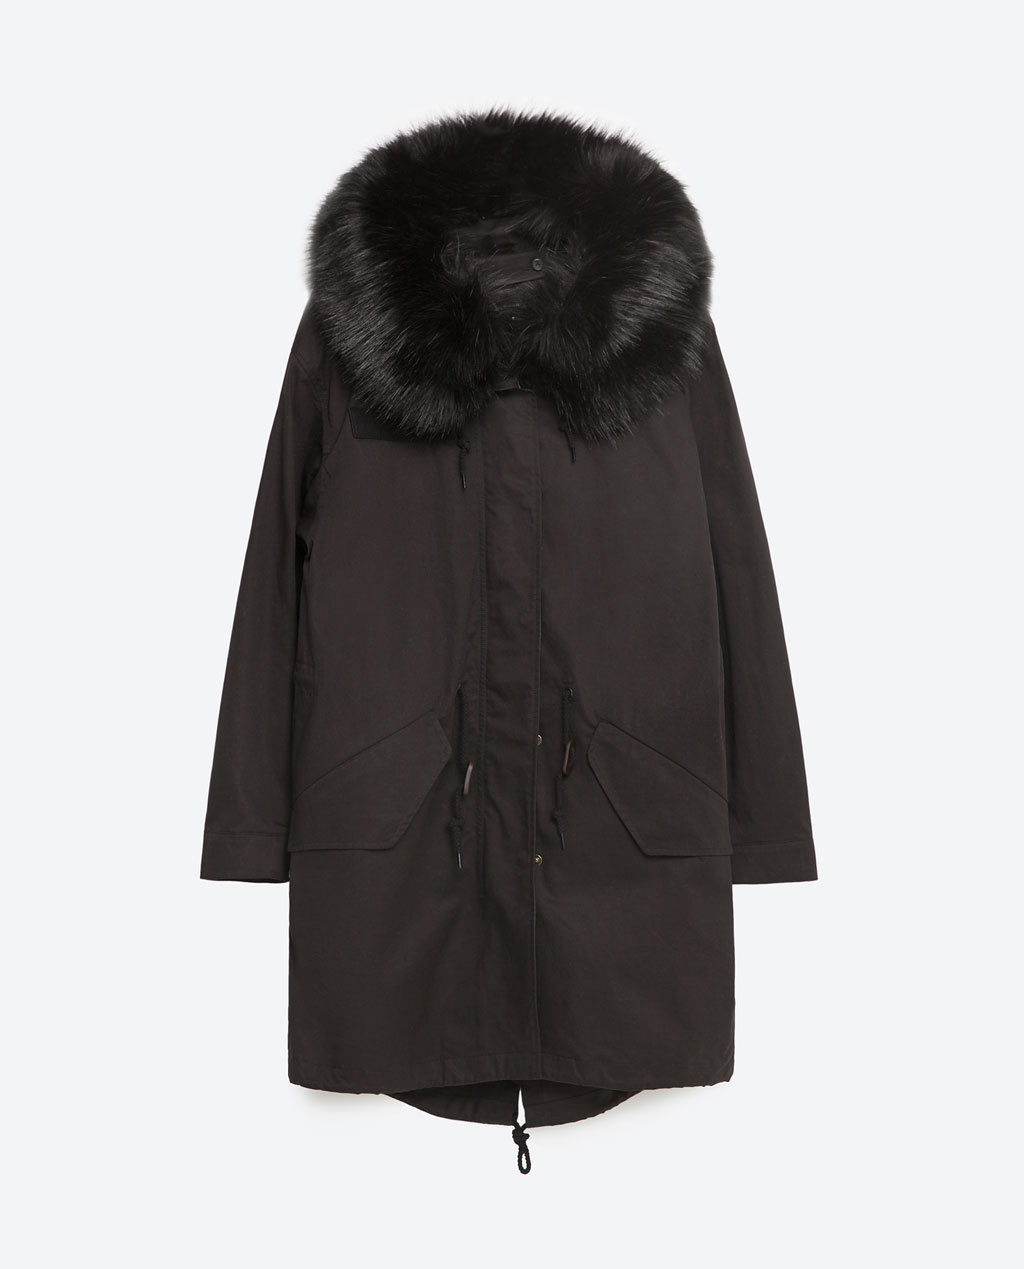 Oversized Parka - pattern: plain; collar: funnel; style: parka; length: mid thigh; predominant colour: black; occasions: casual, creative work; fit: straight cut (boxy); fibres: cotton - 100%; sleeve length: long sleeve; sleeve style: standard; collar break: high/illusion of break when open; pattern type: fabric; texture group: woven light midweight; embellishment: fur; season: s/s 2016; wardrobe: highlight